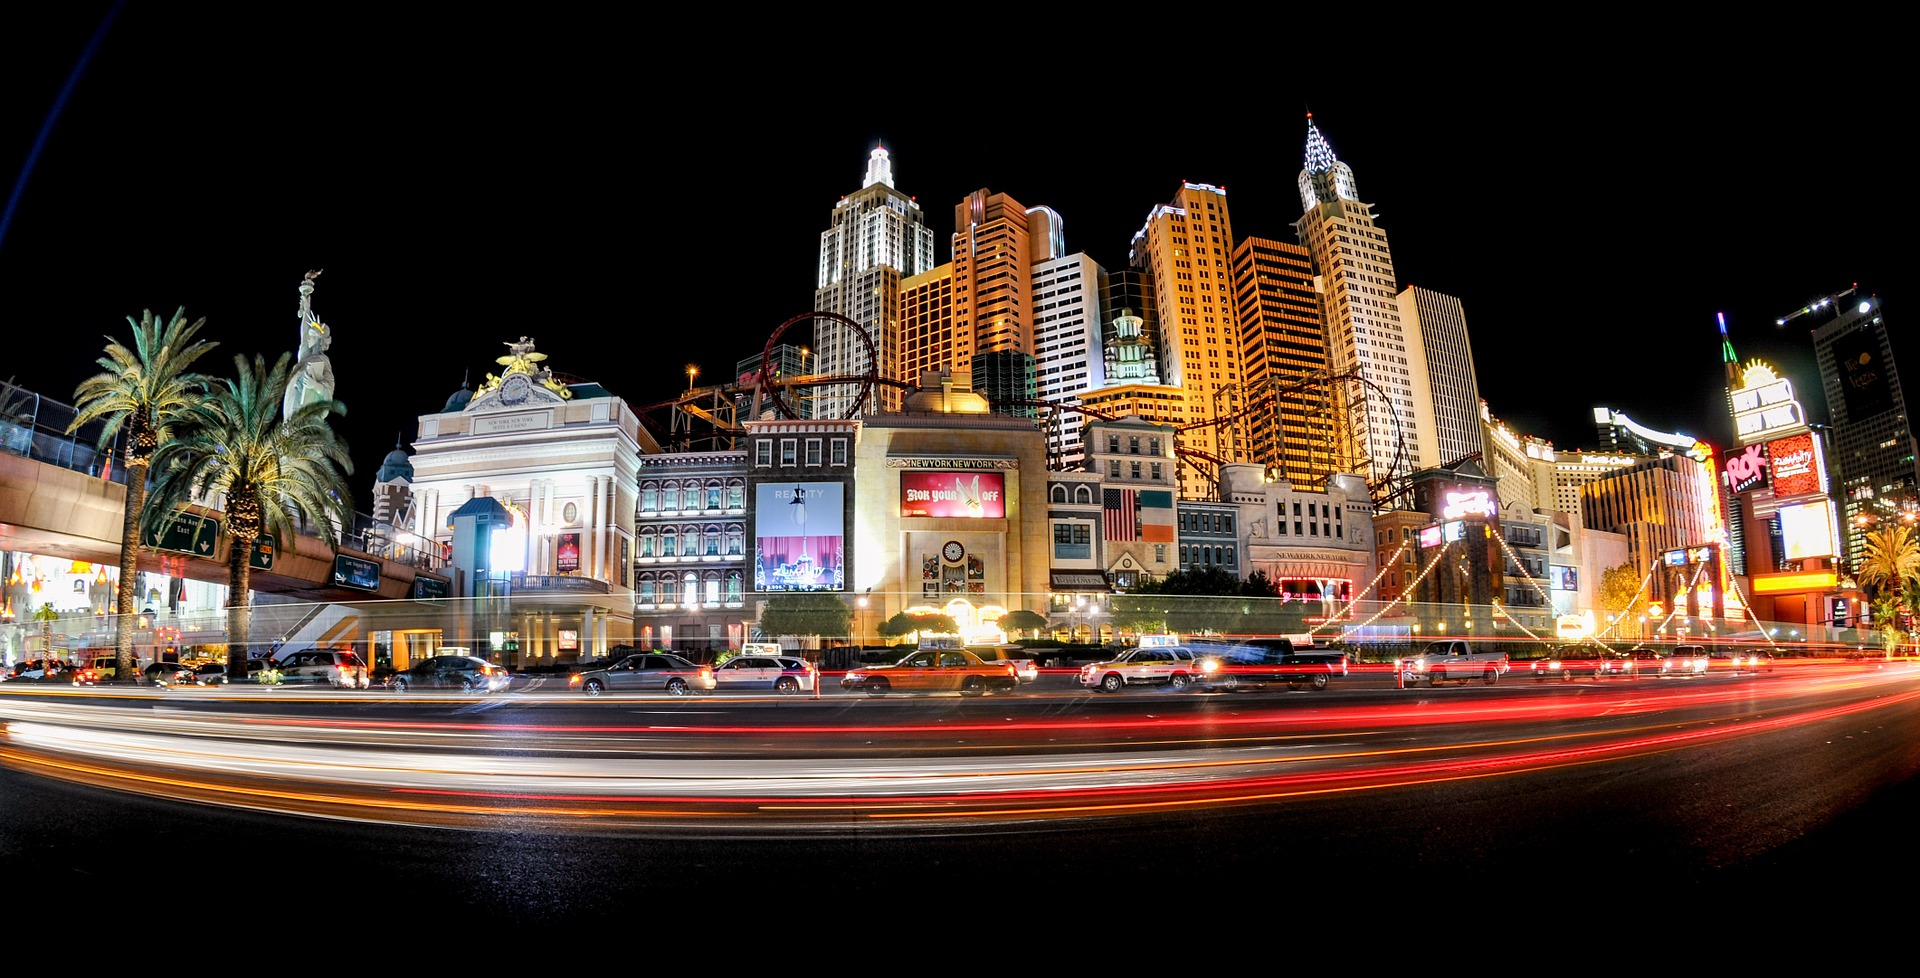 Nevada Slot Machine Casino Gambling and the Las Vegas Strip.